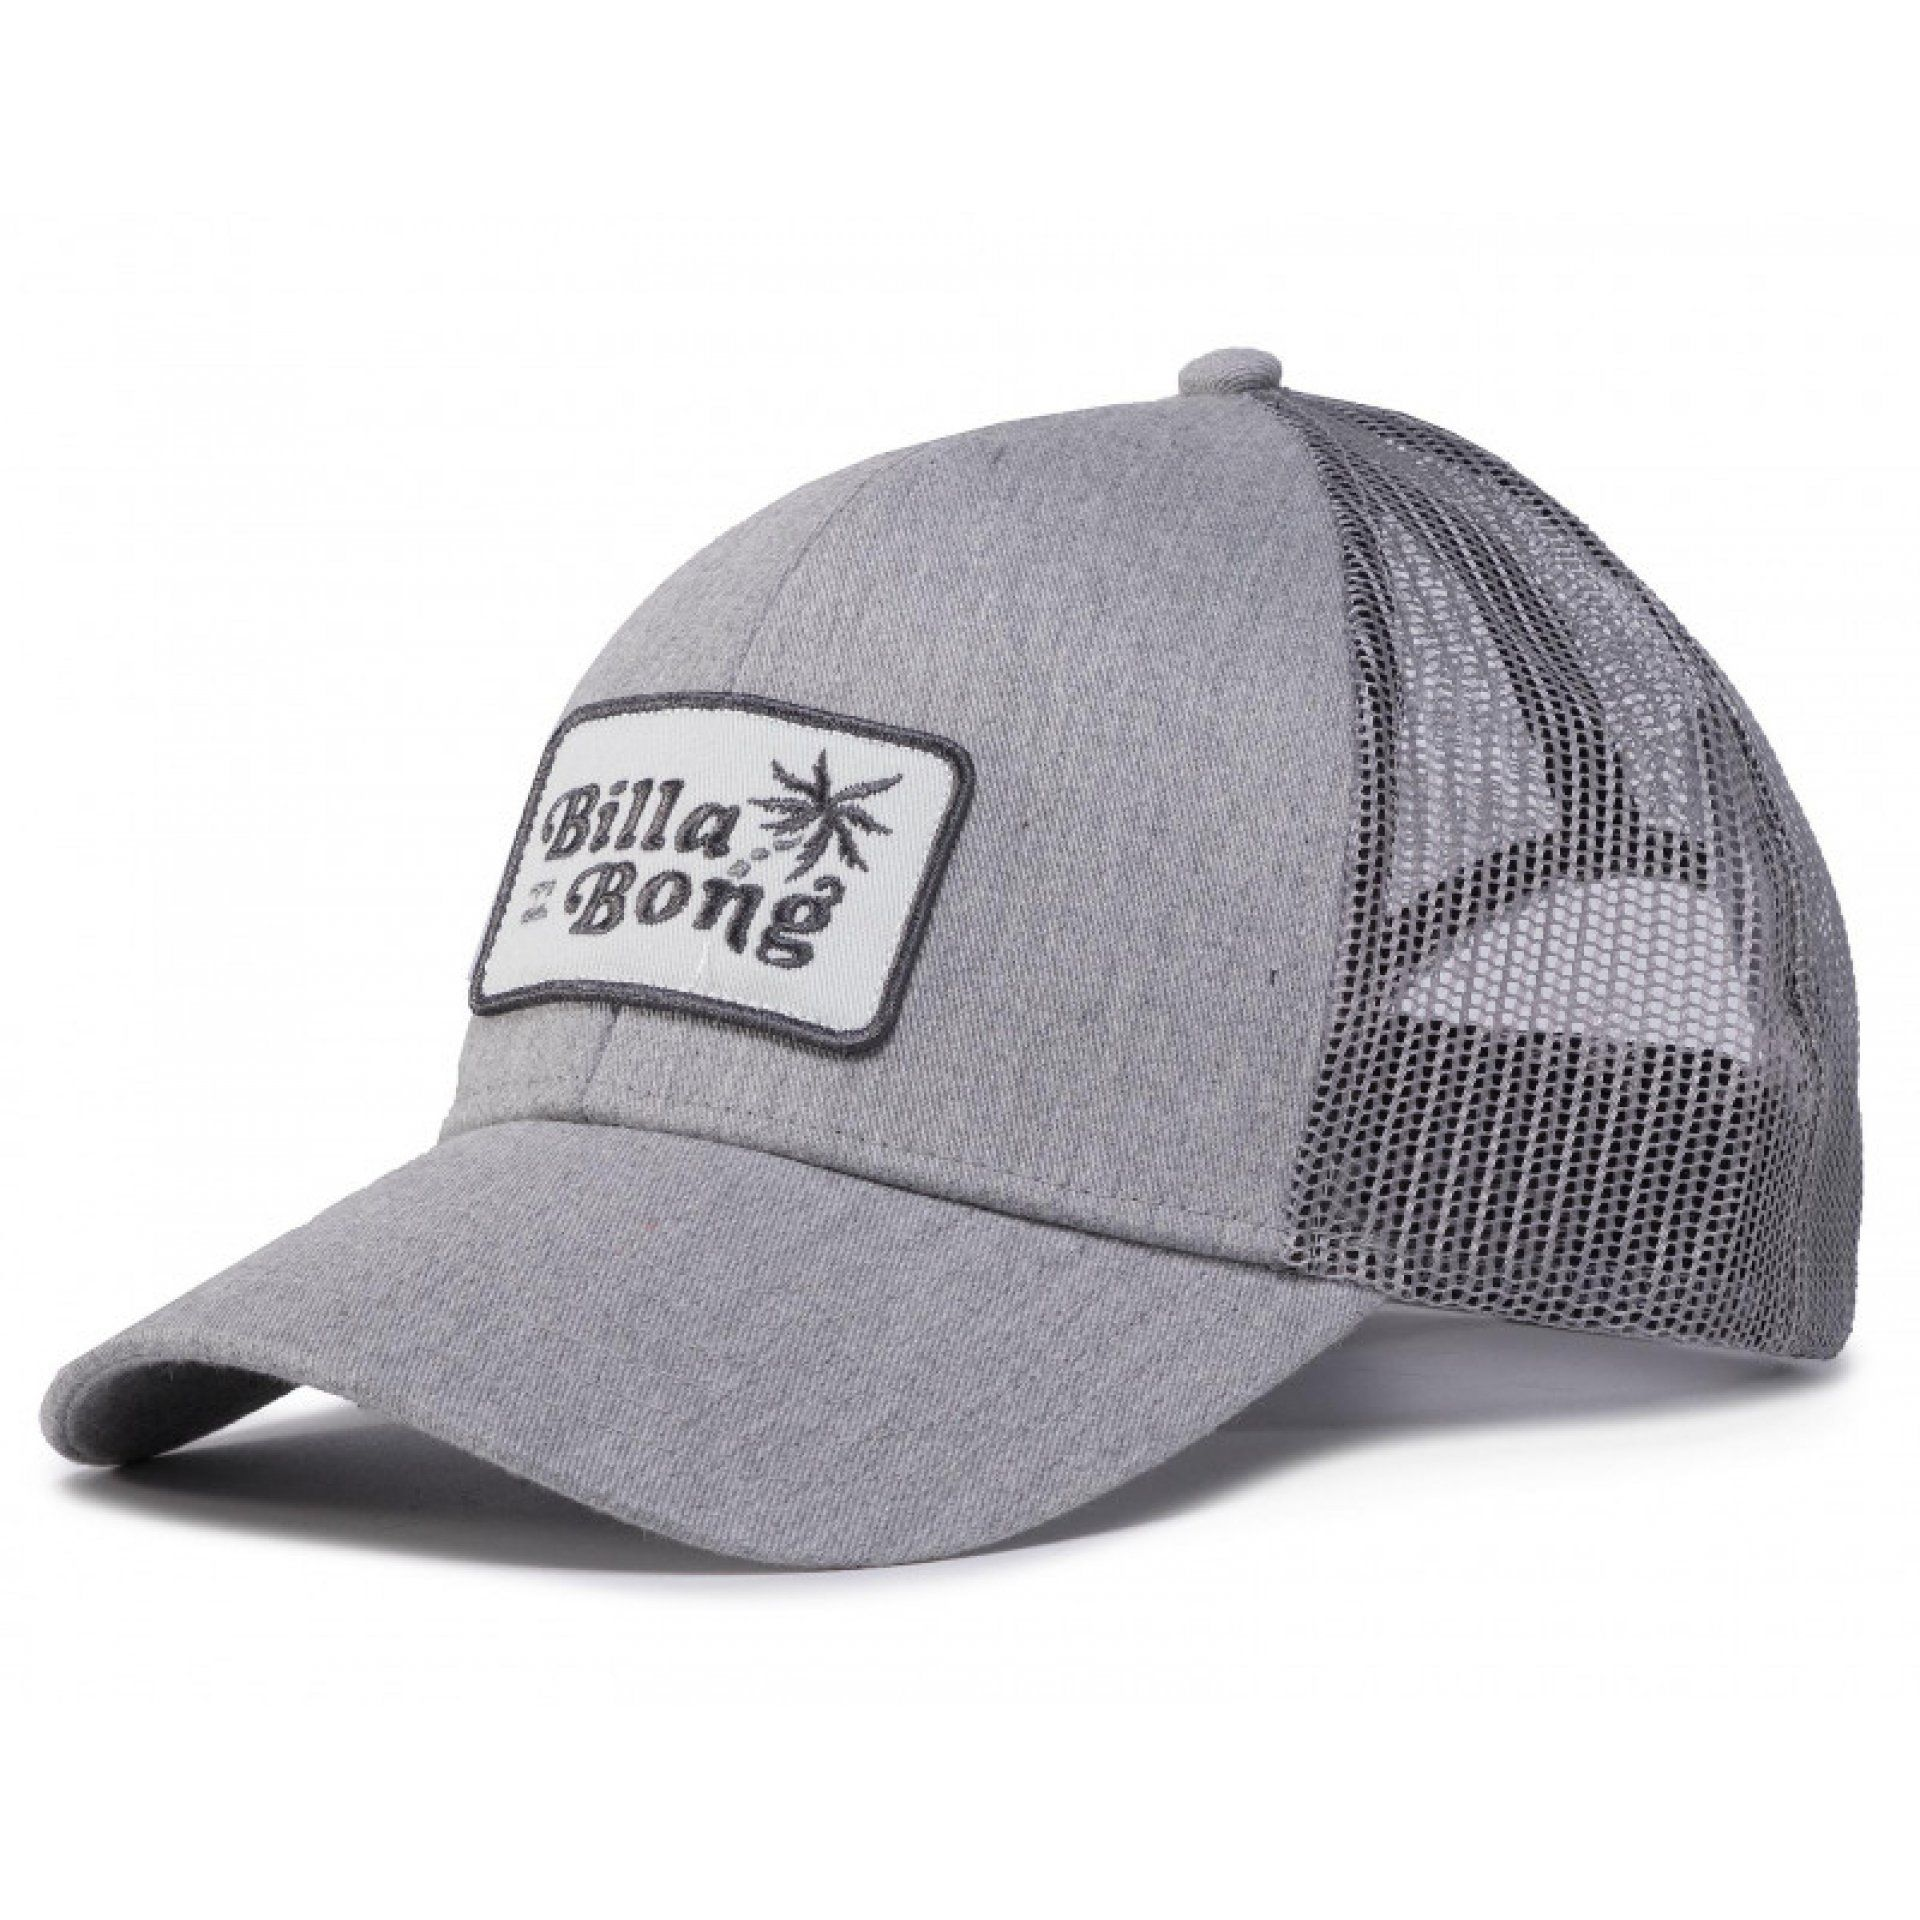 CZAPKA Z DASZKIEM BILLABONG WALLED TRUCKER 1009 HEATHER GREY